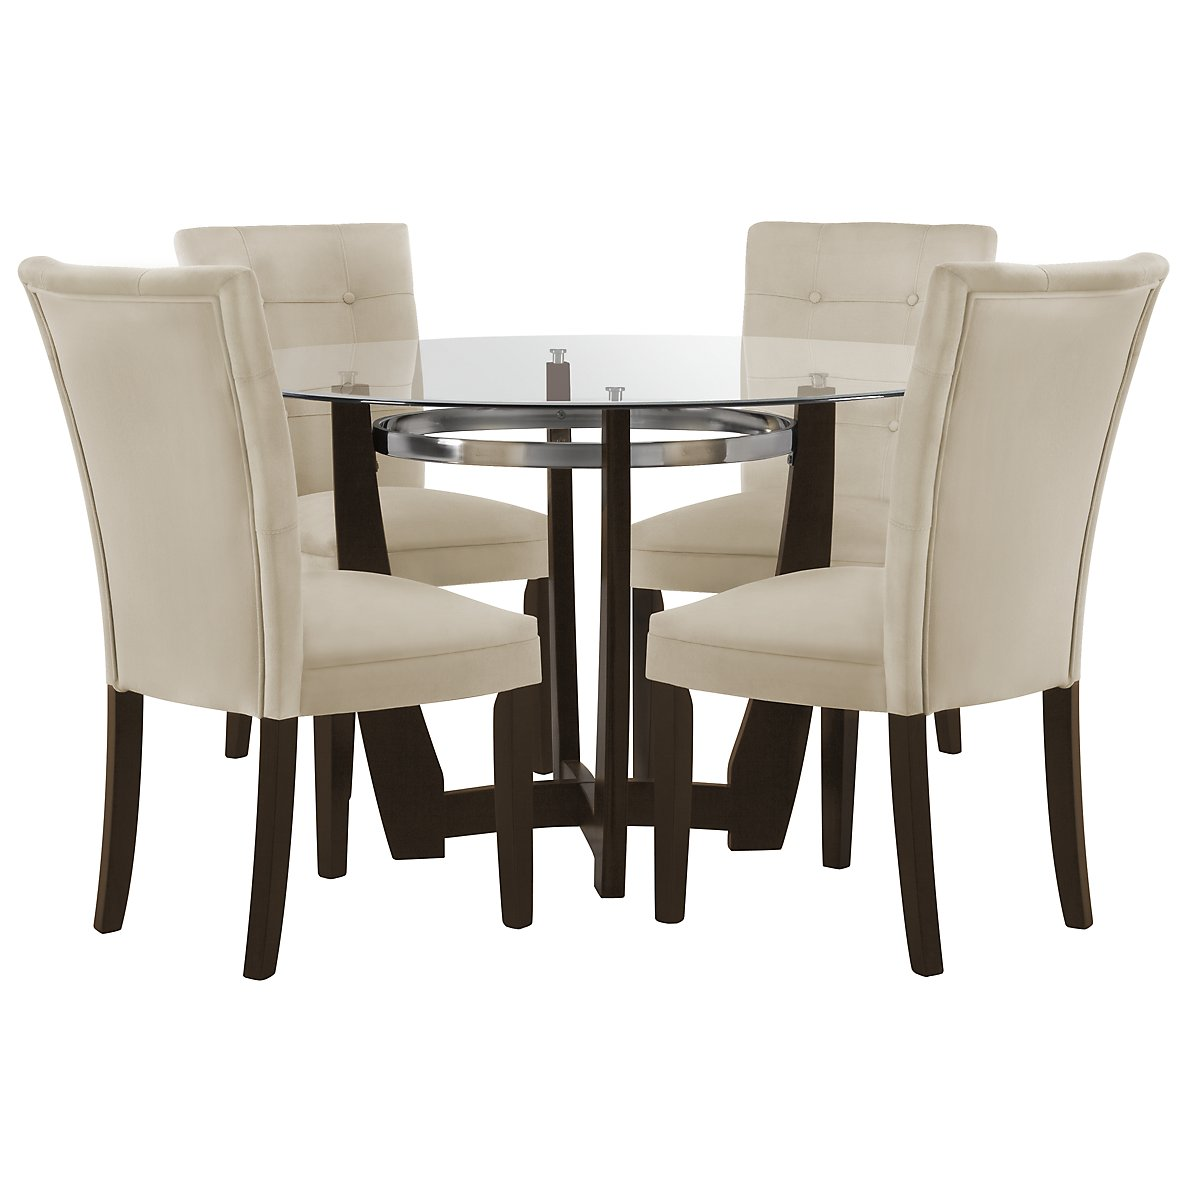 Matinee Dark Tone Round Table 4 Upholstered Chairs